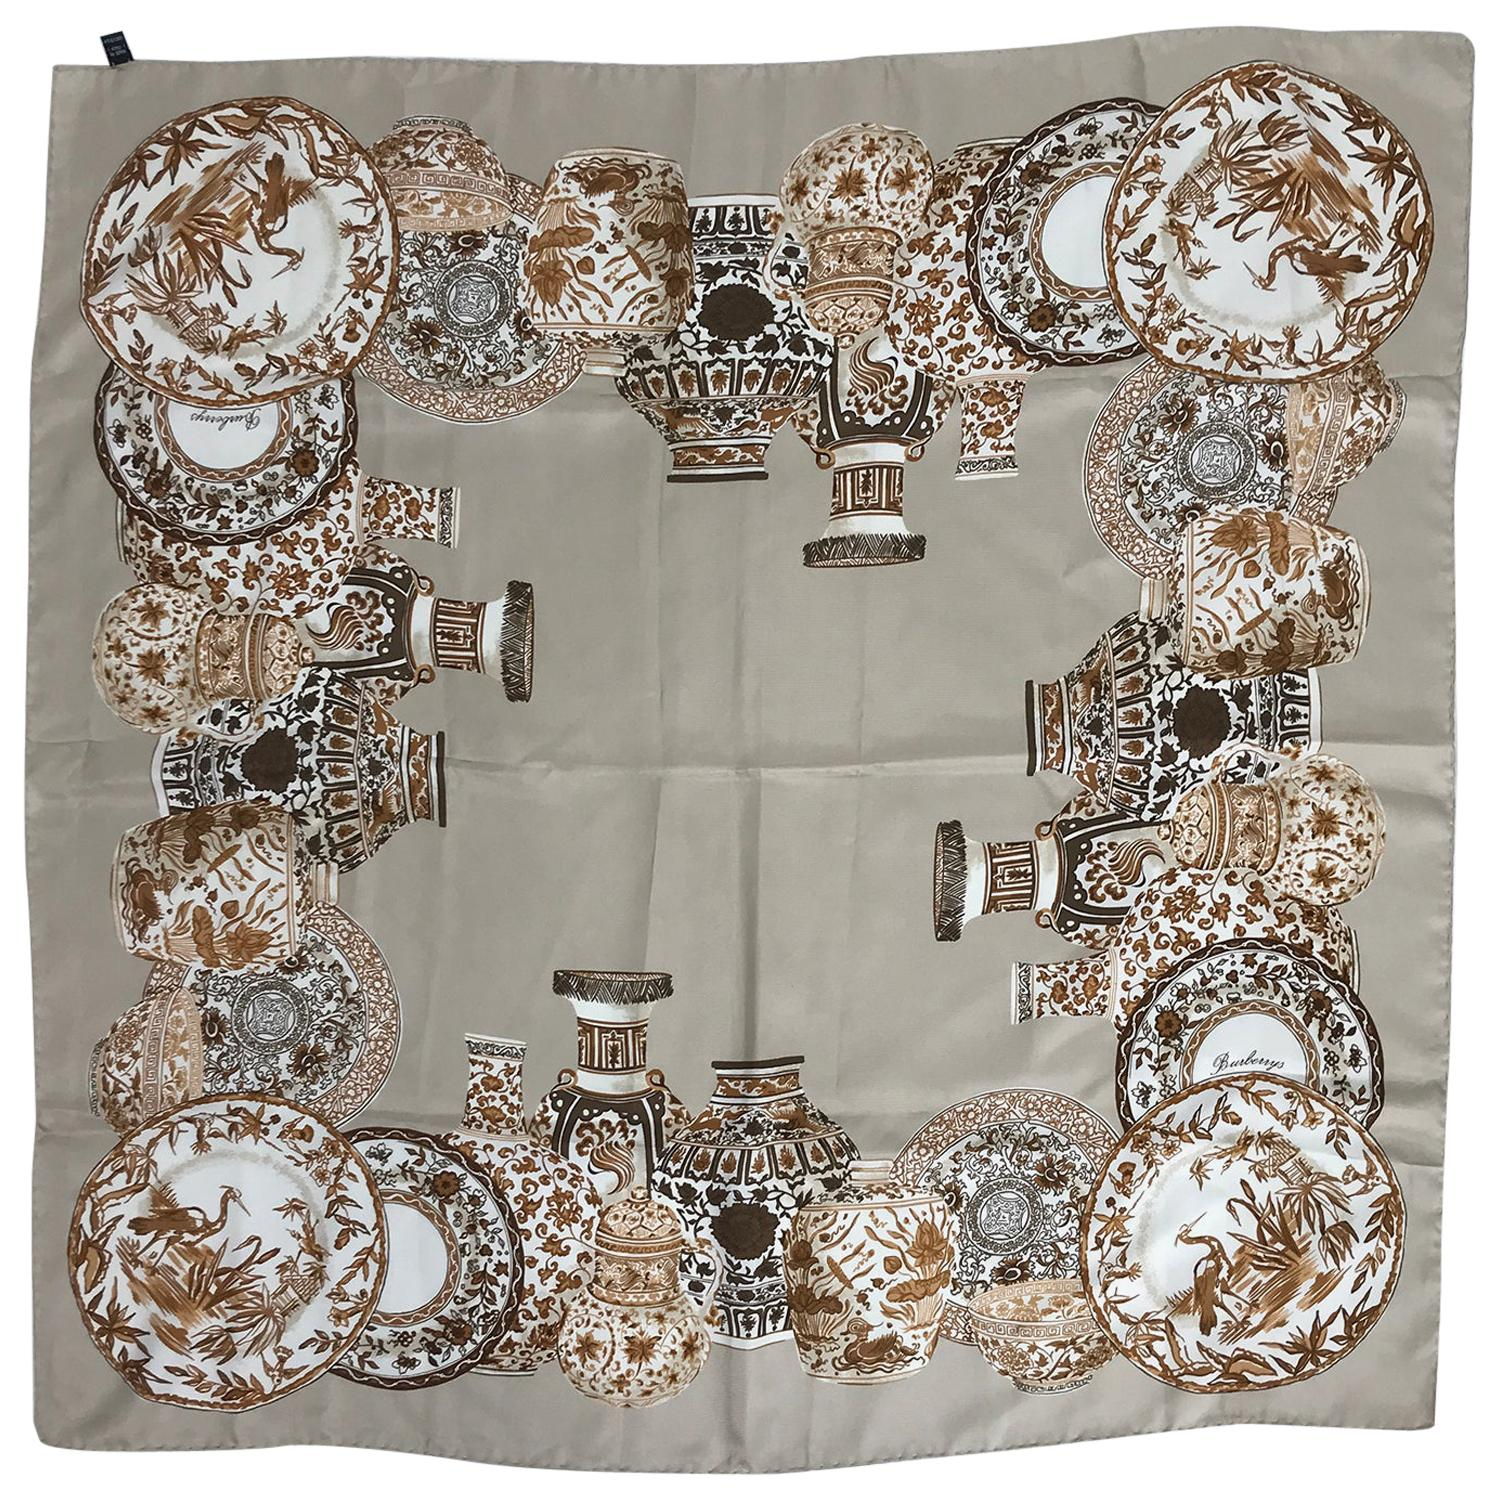 Burberry Silk Scarf Transfer-ware China Pattern in Browns and Tan